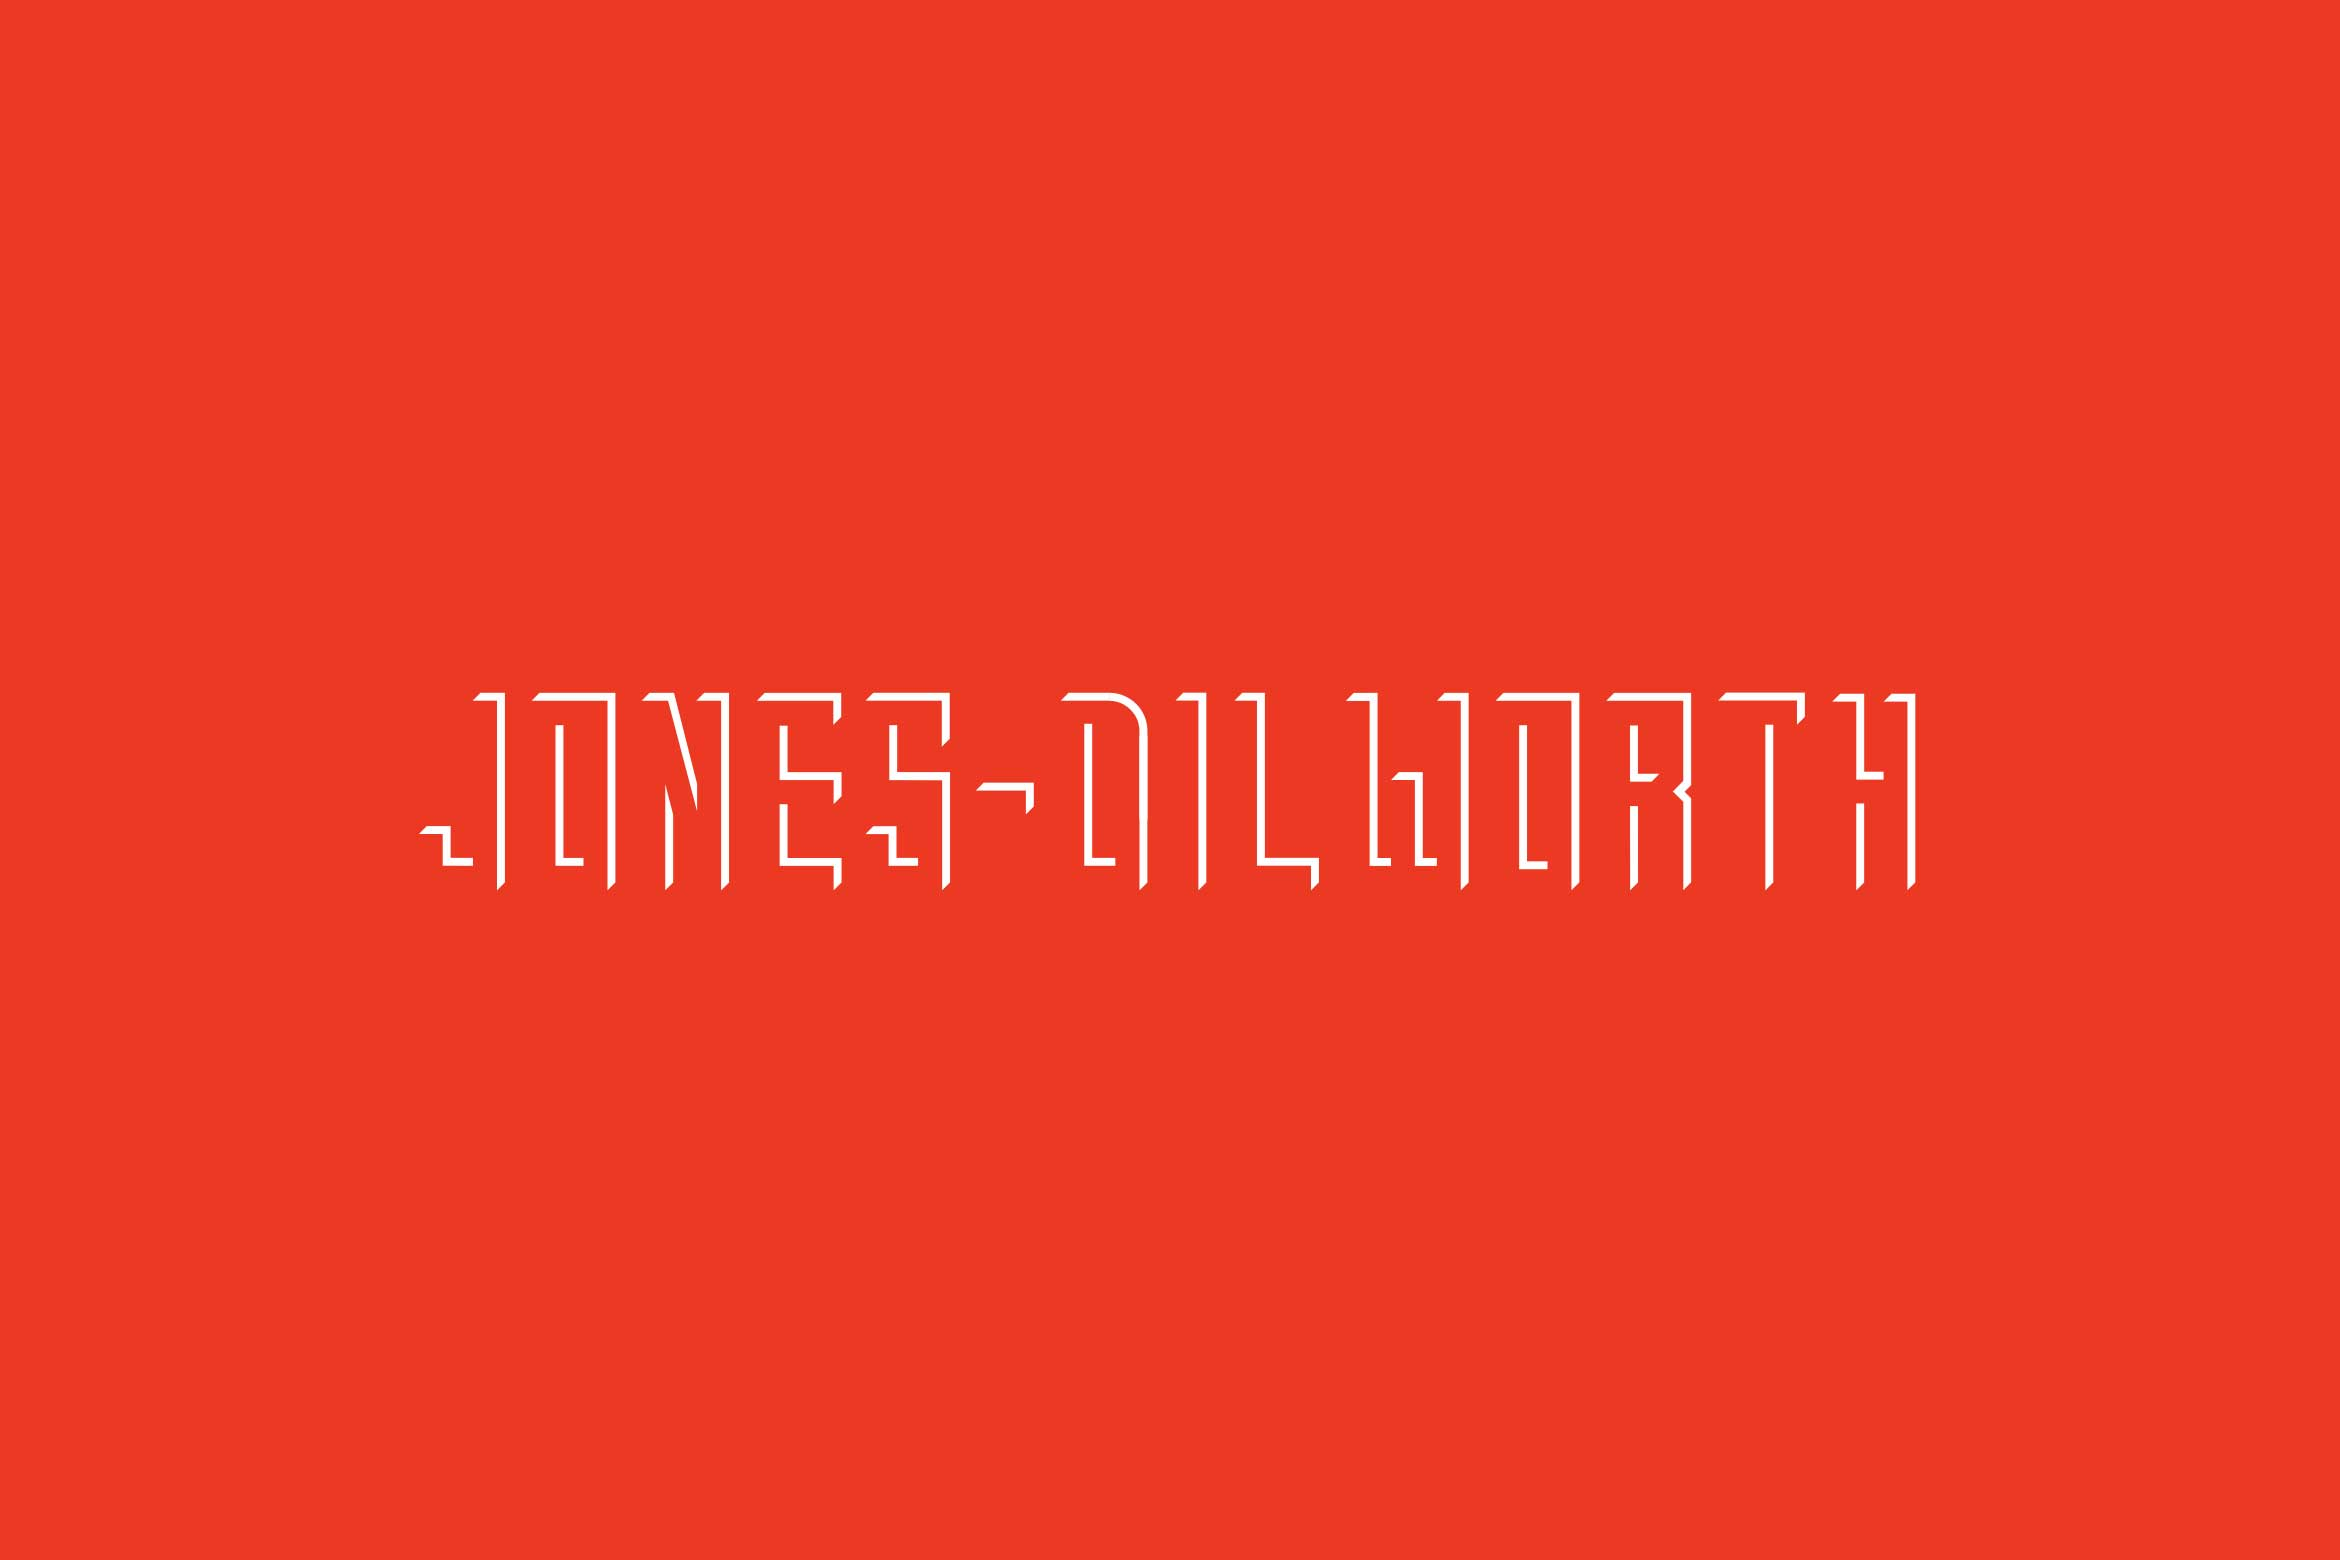 Jones-Dilworth logo